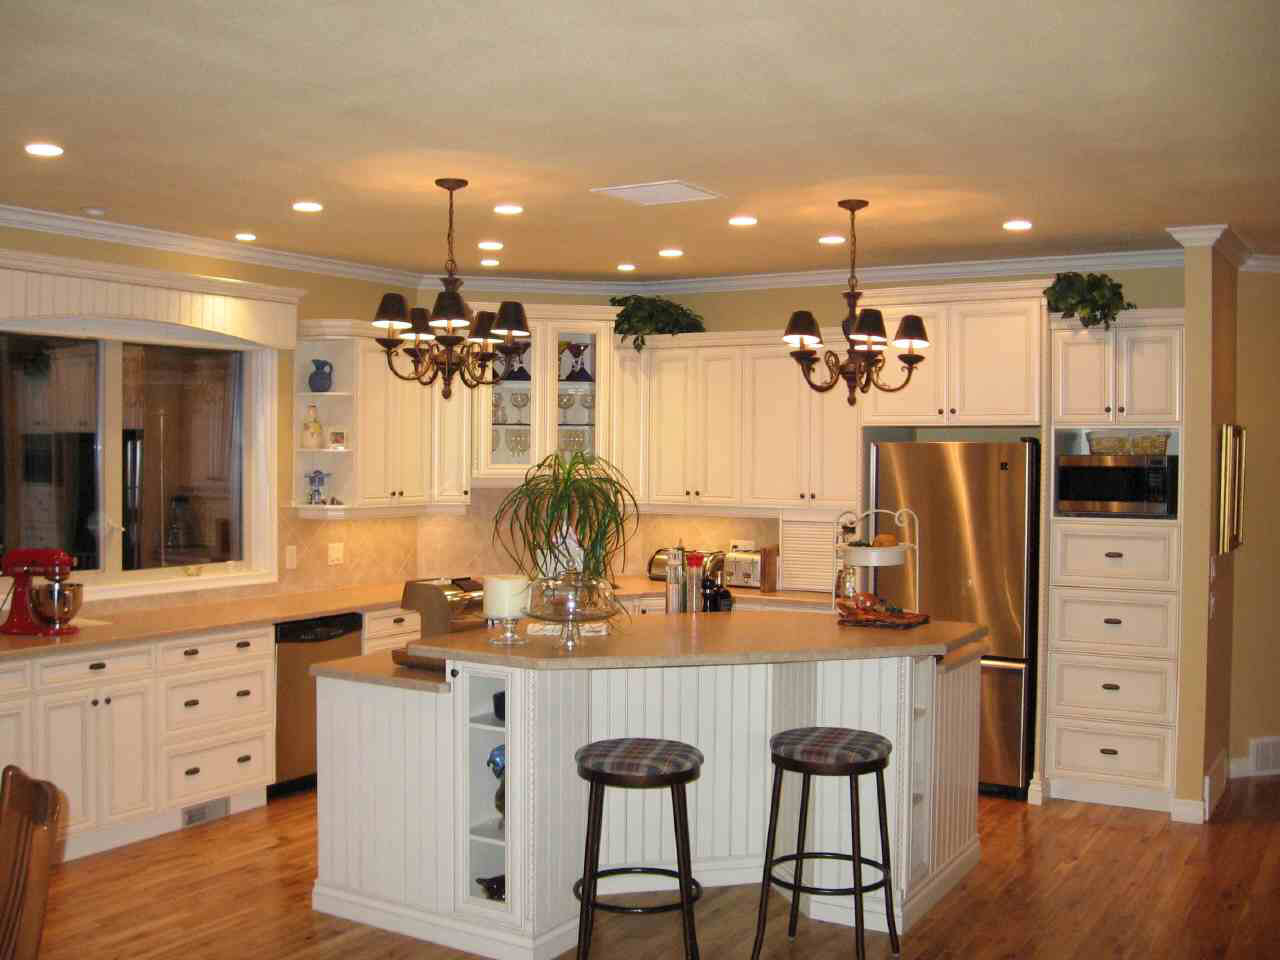 Peartreedesigns beautiful modern kitchen interiors for Interior design ideas for kitchens